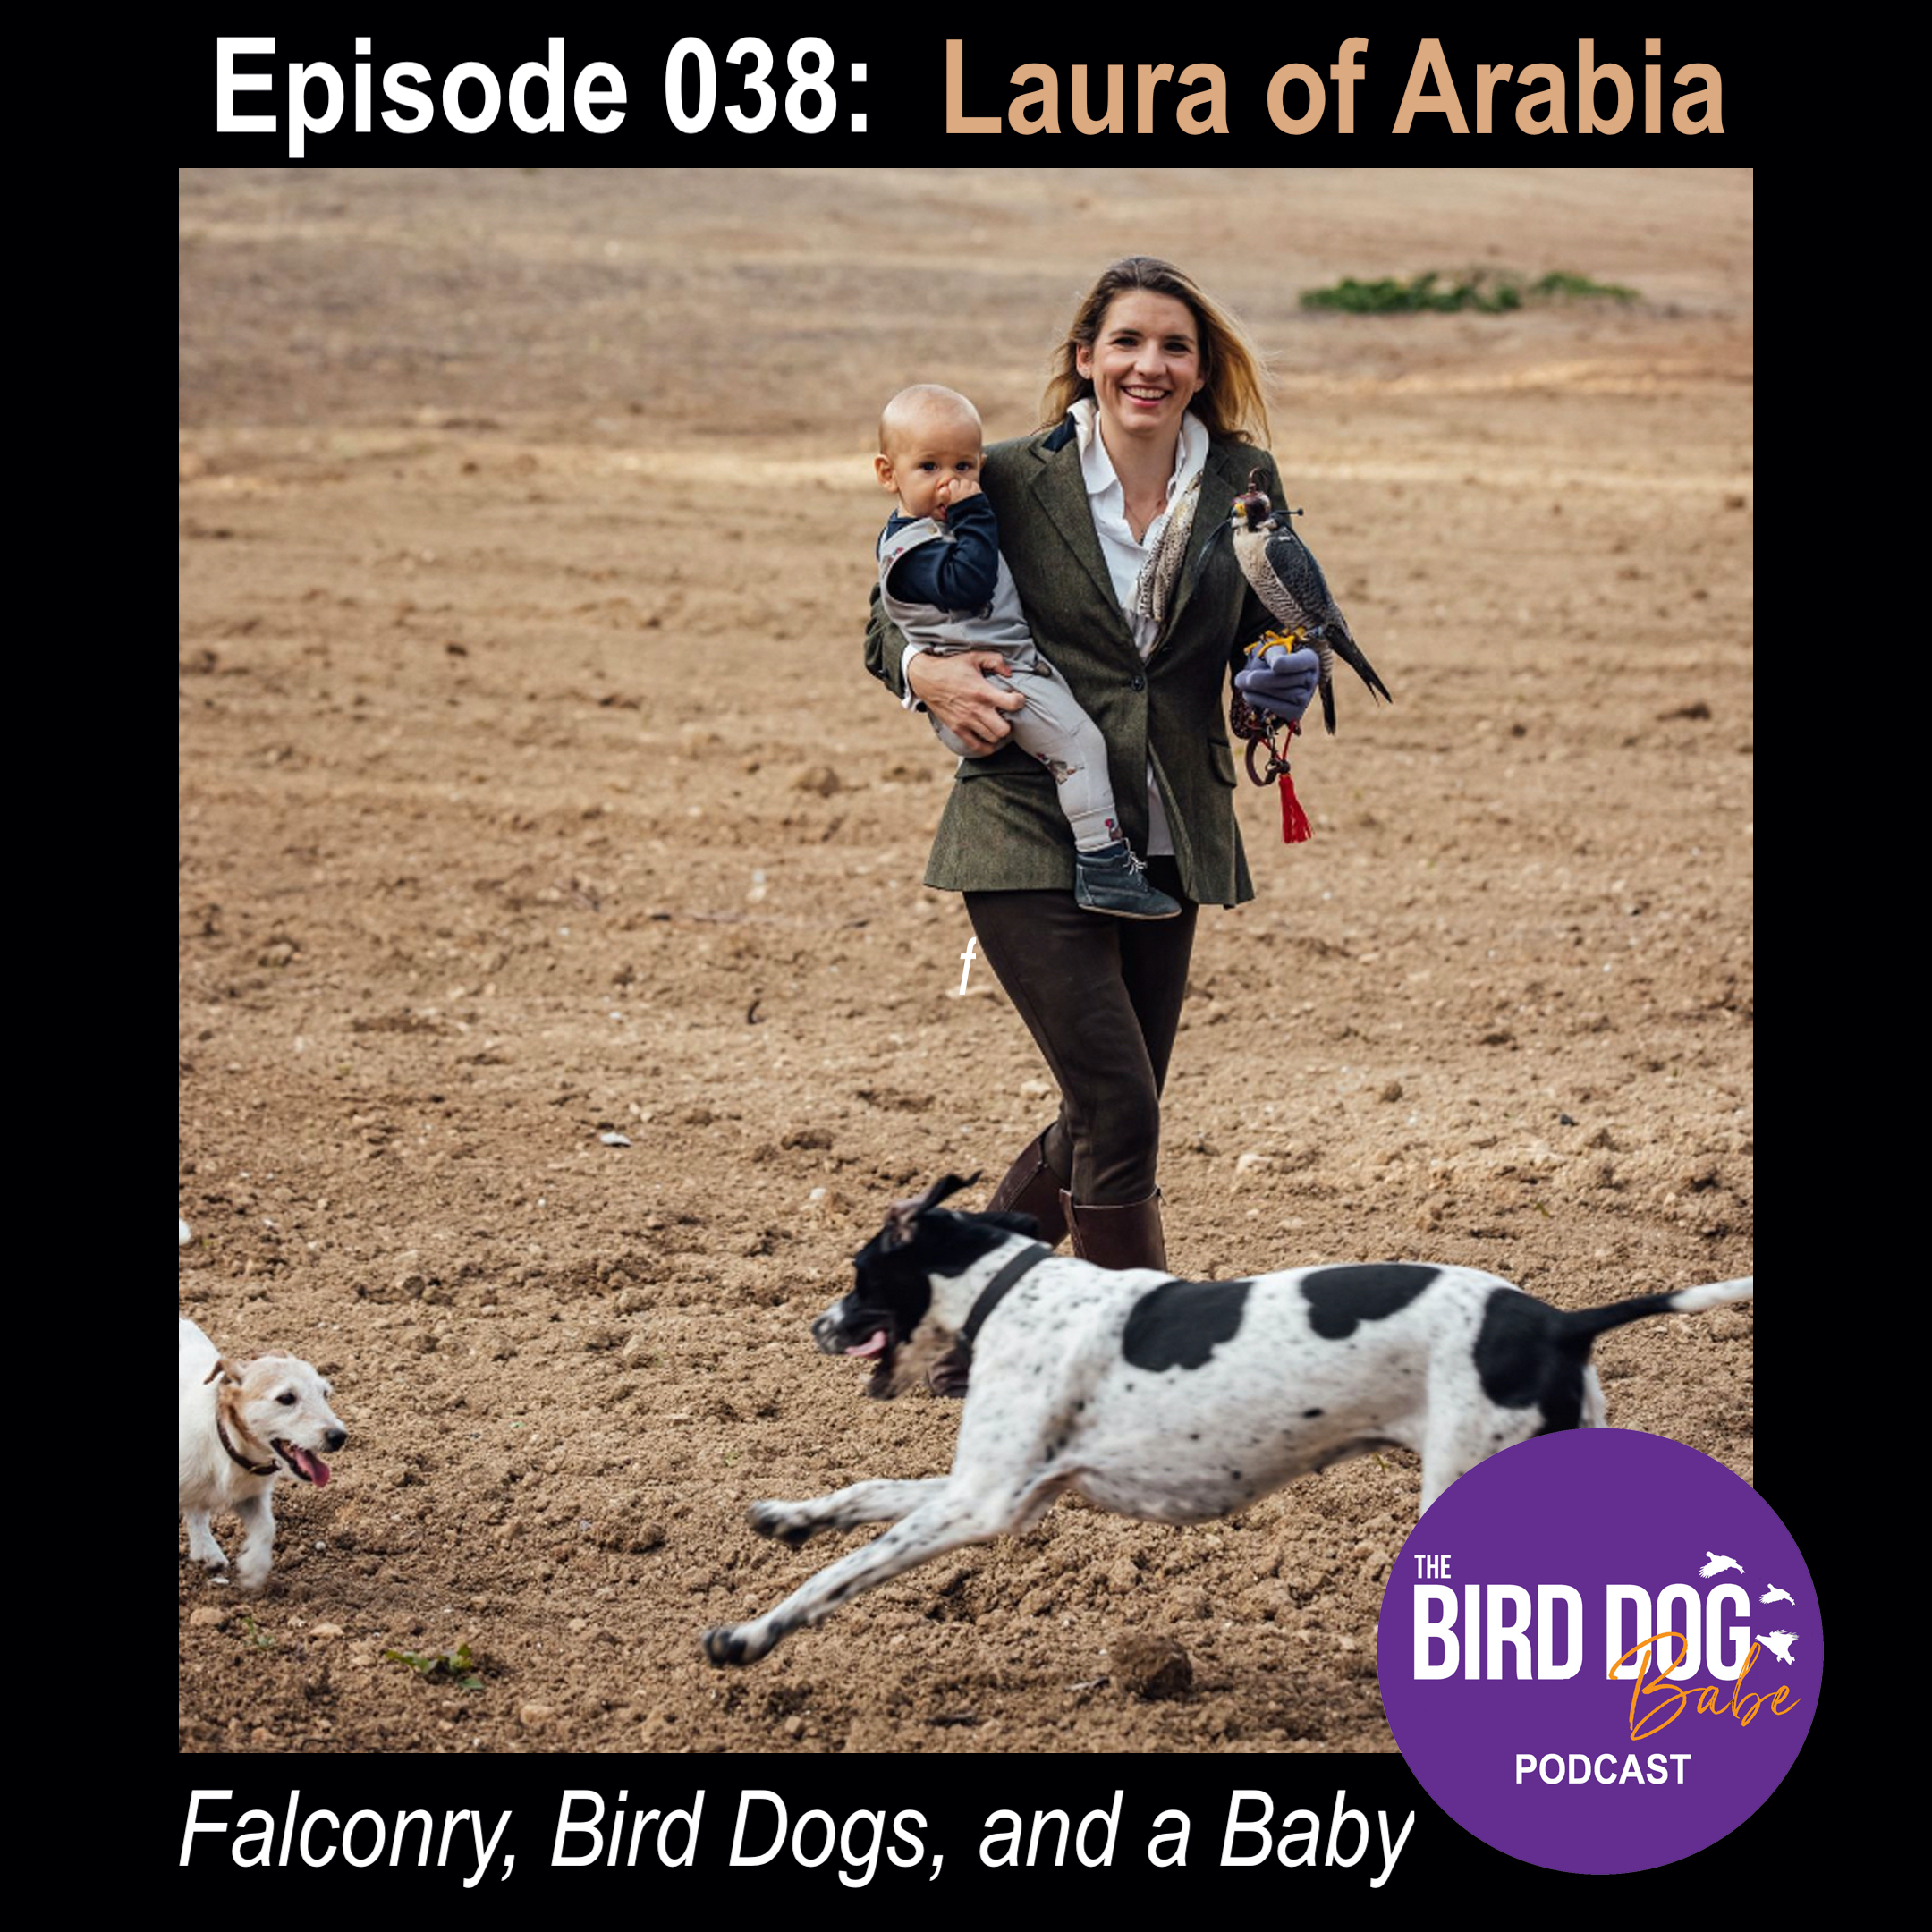 Episode 038: Falconry, Bird Dogs and a Baby with Laura of Arabia